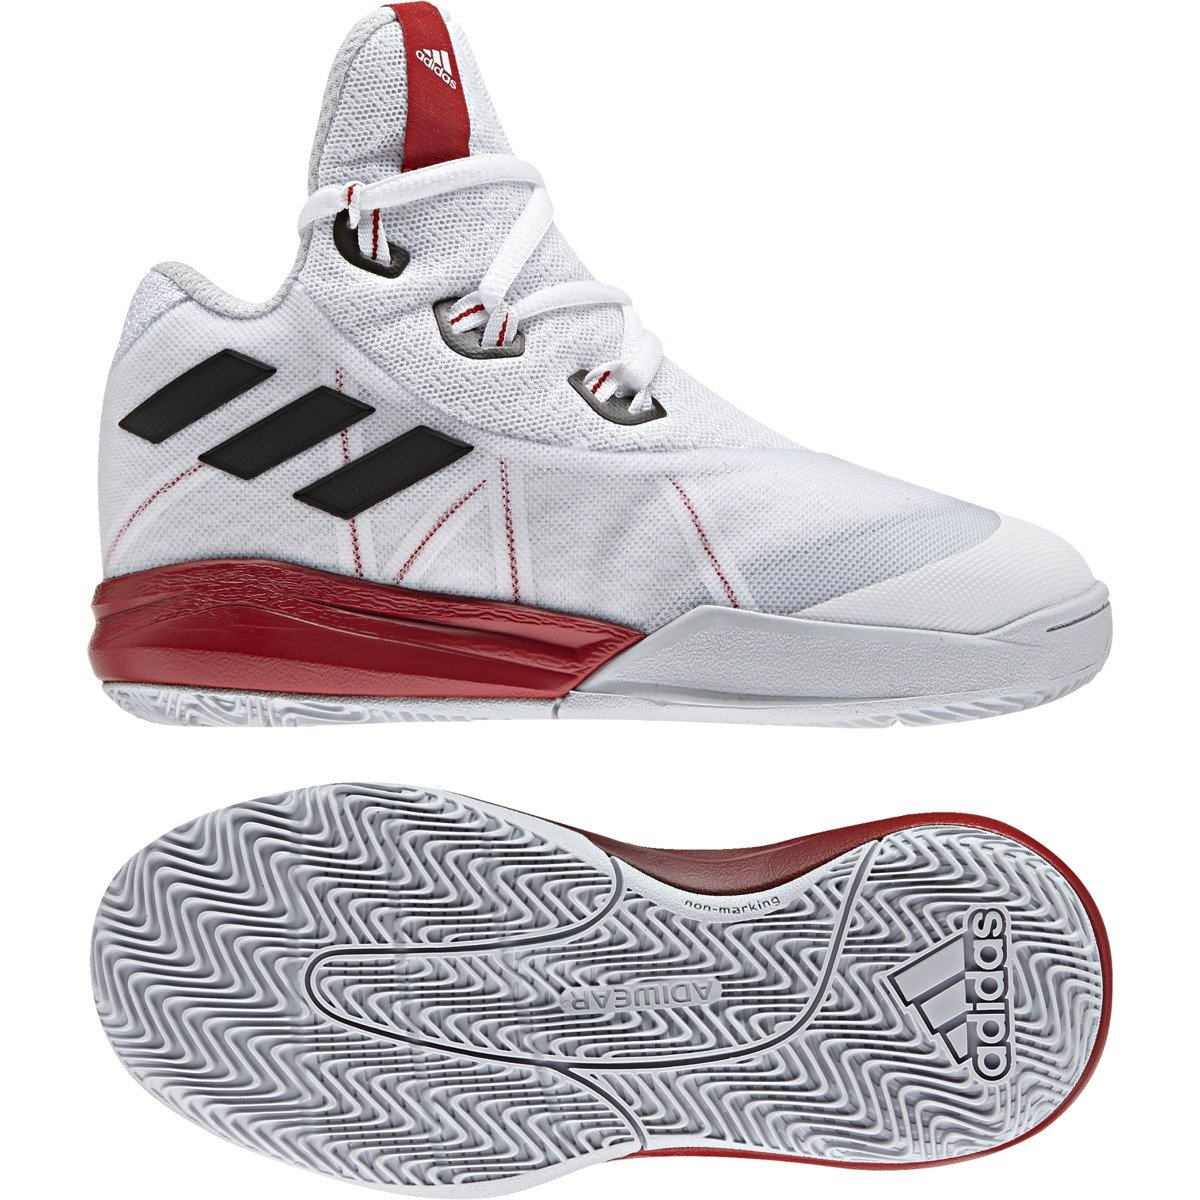 3ae6c2d474e ... fre pl Adidas Energy Bounce BB Chaussures